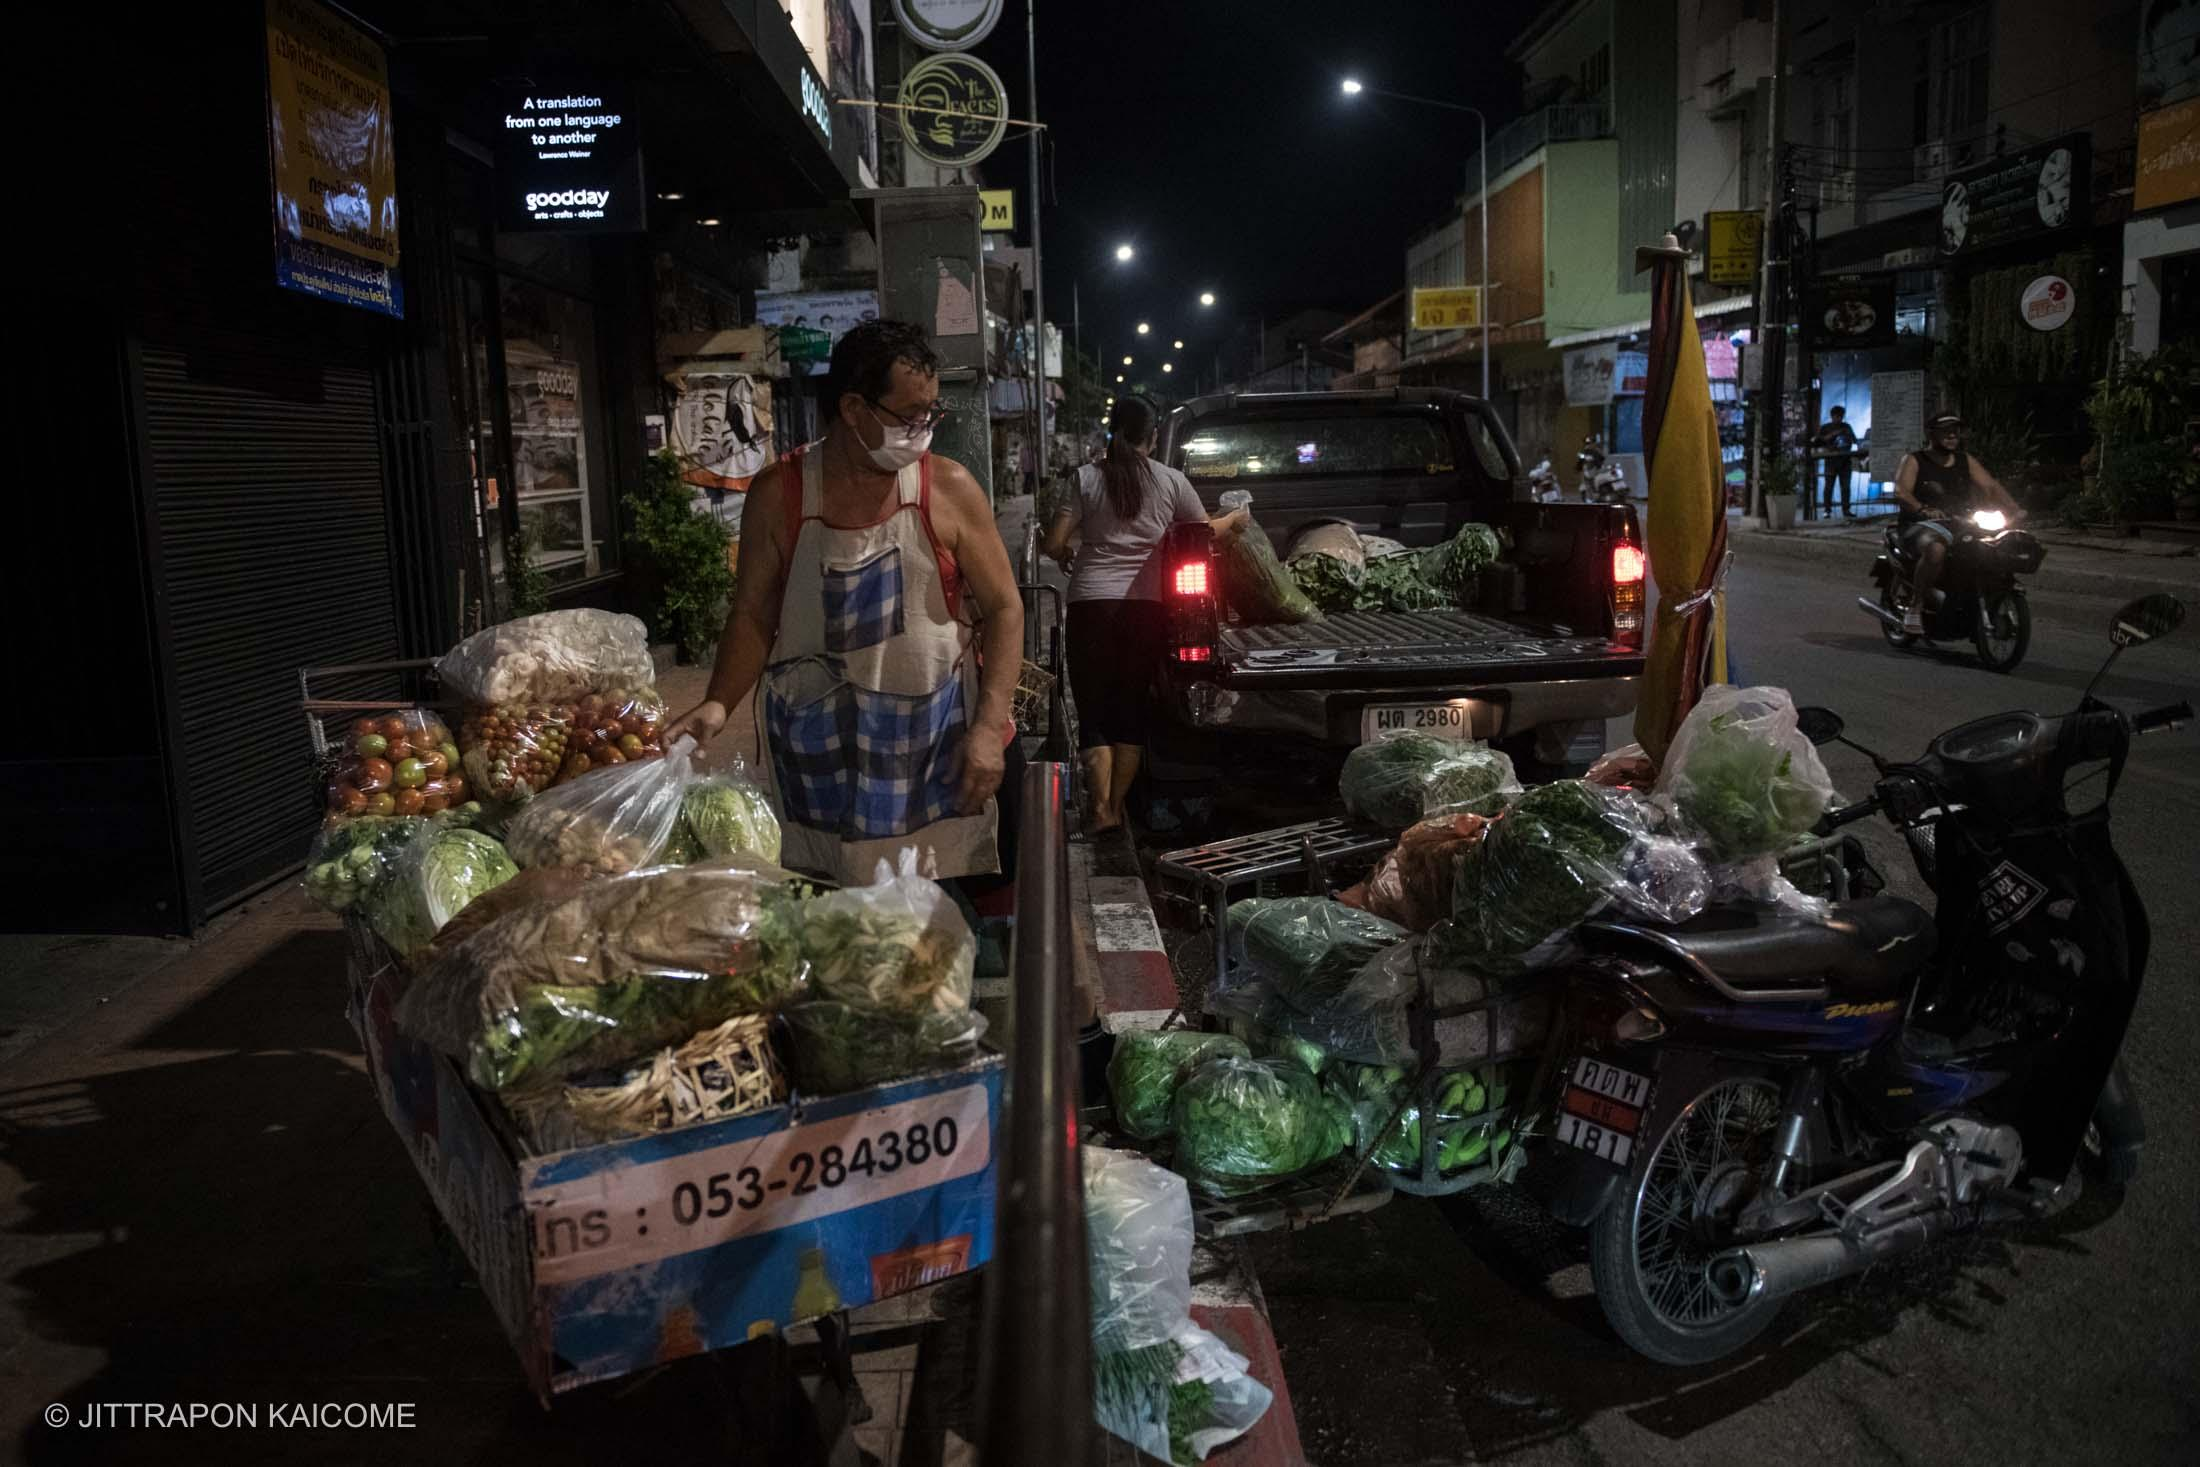 08.12 PM - Fresh food vendors are organizing vegetables into the market in the center of Chiang Mai old town amid the coronavirus outbreak is lowing people's purchasing power. People are buying fewer products from the market. Which many left unsold in time before the vegetable becomes rotten. Chiang Mai, Thailand in May 16, 2020.